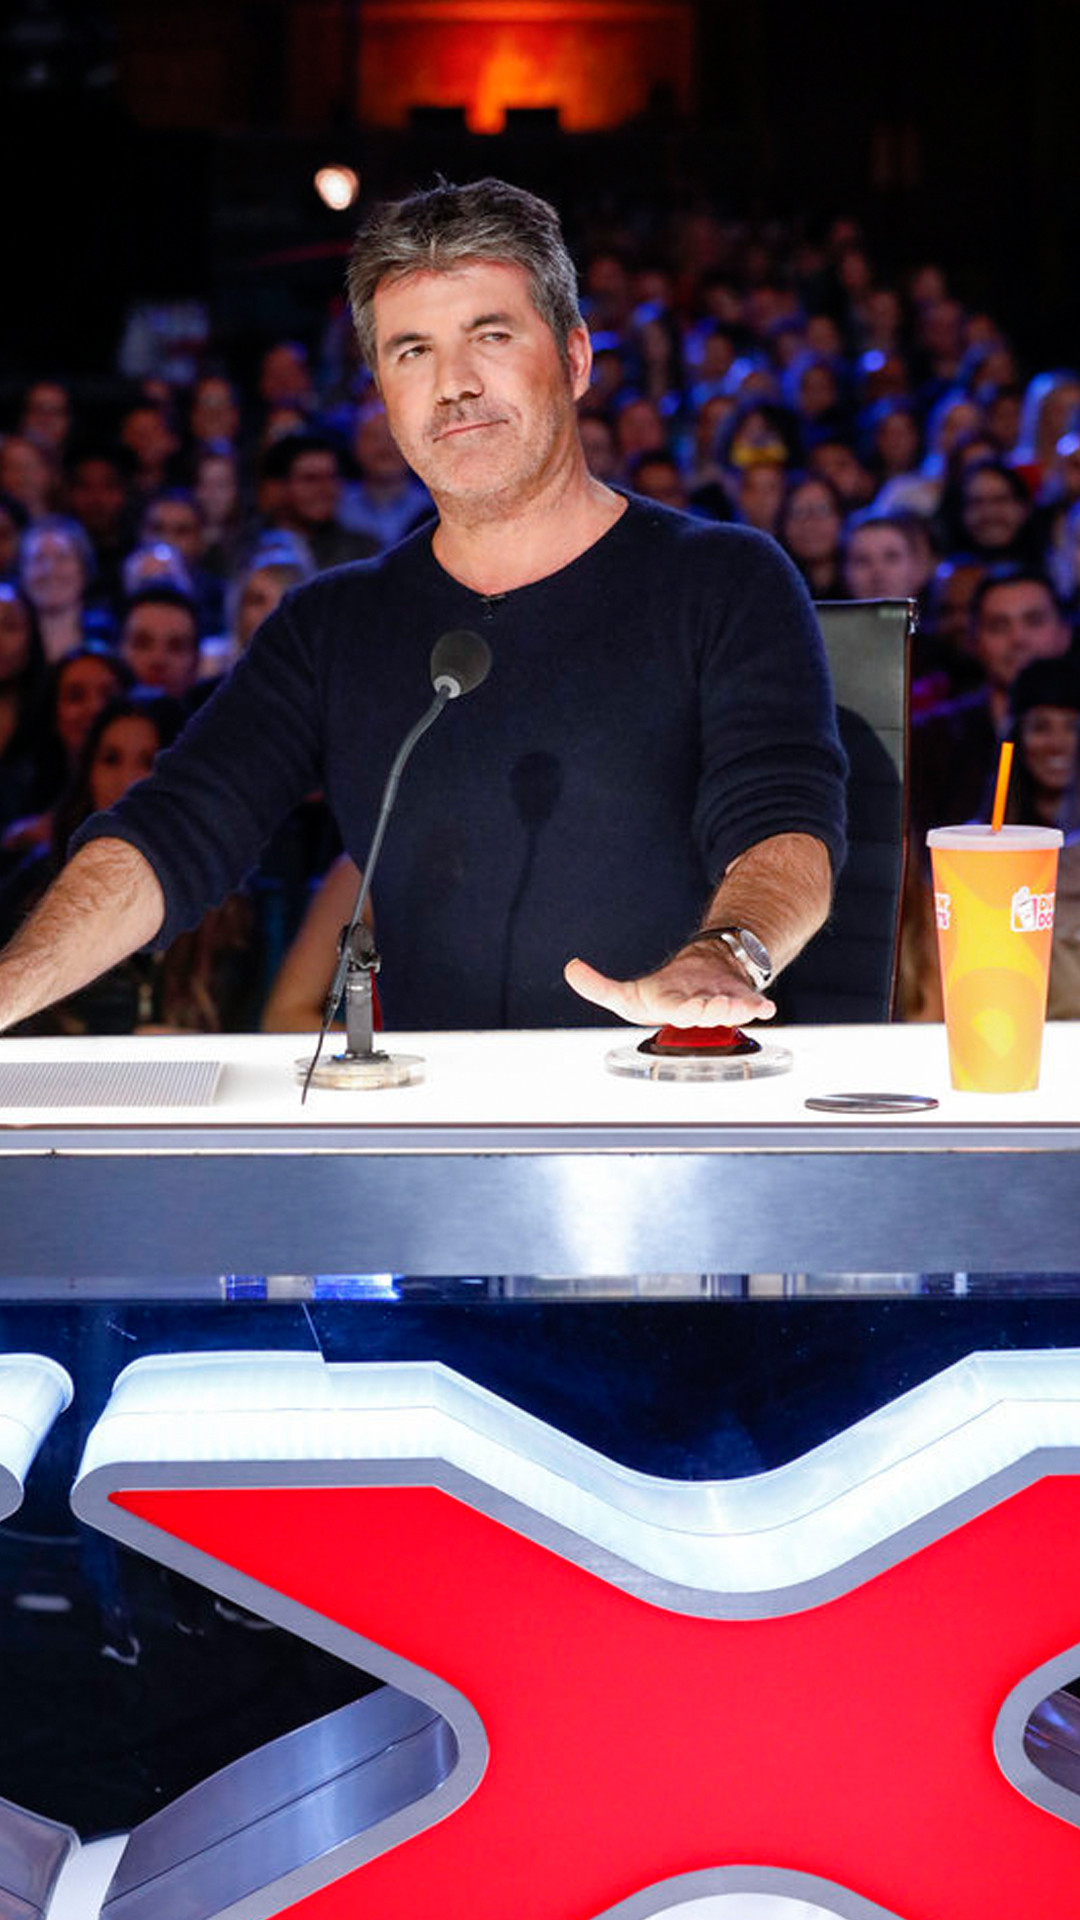 Simon Cowell, America's Got Talent